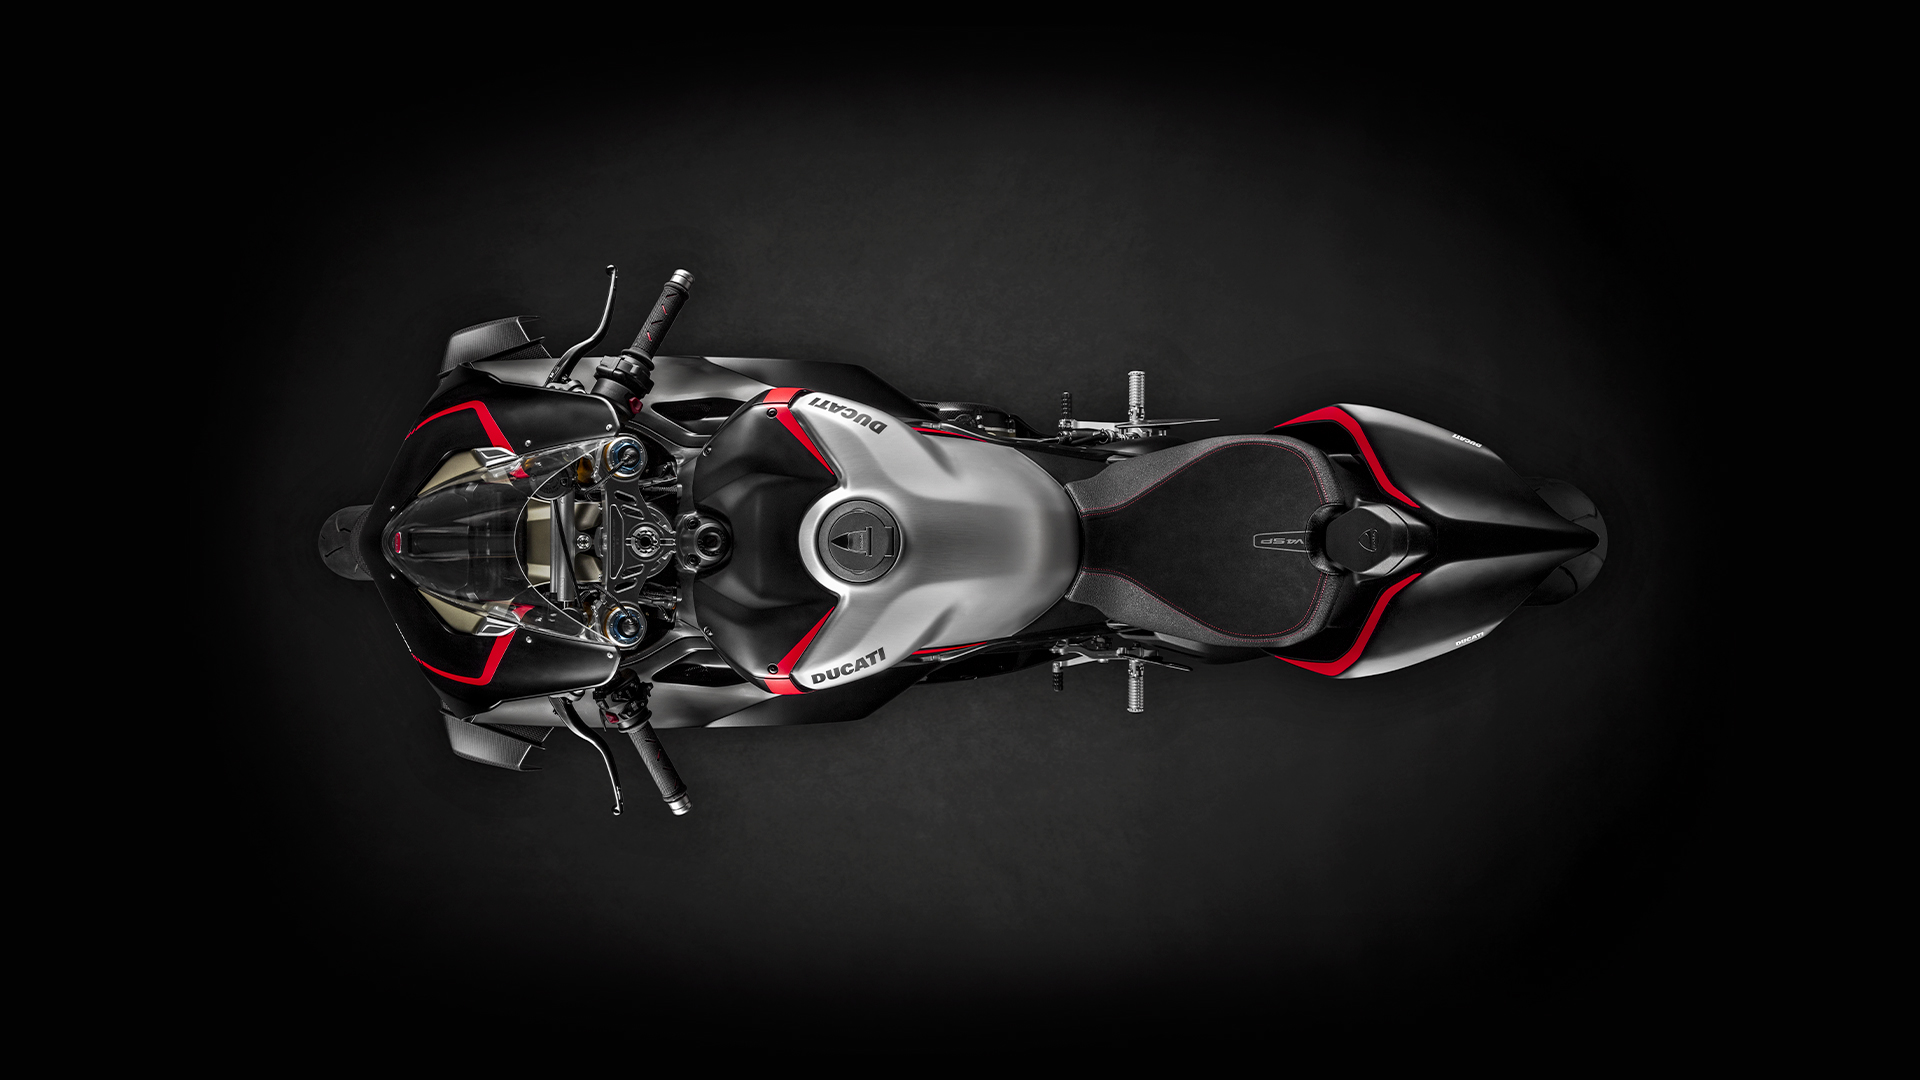 Ducati V4 Panigale - Page 23 Pv4-sp16